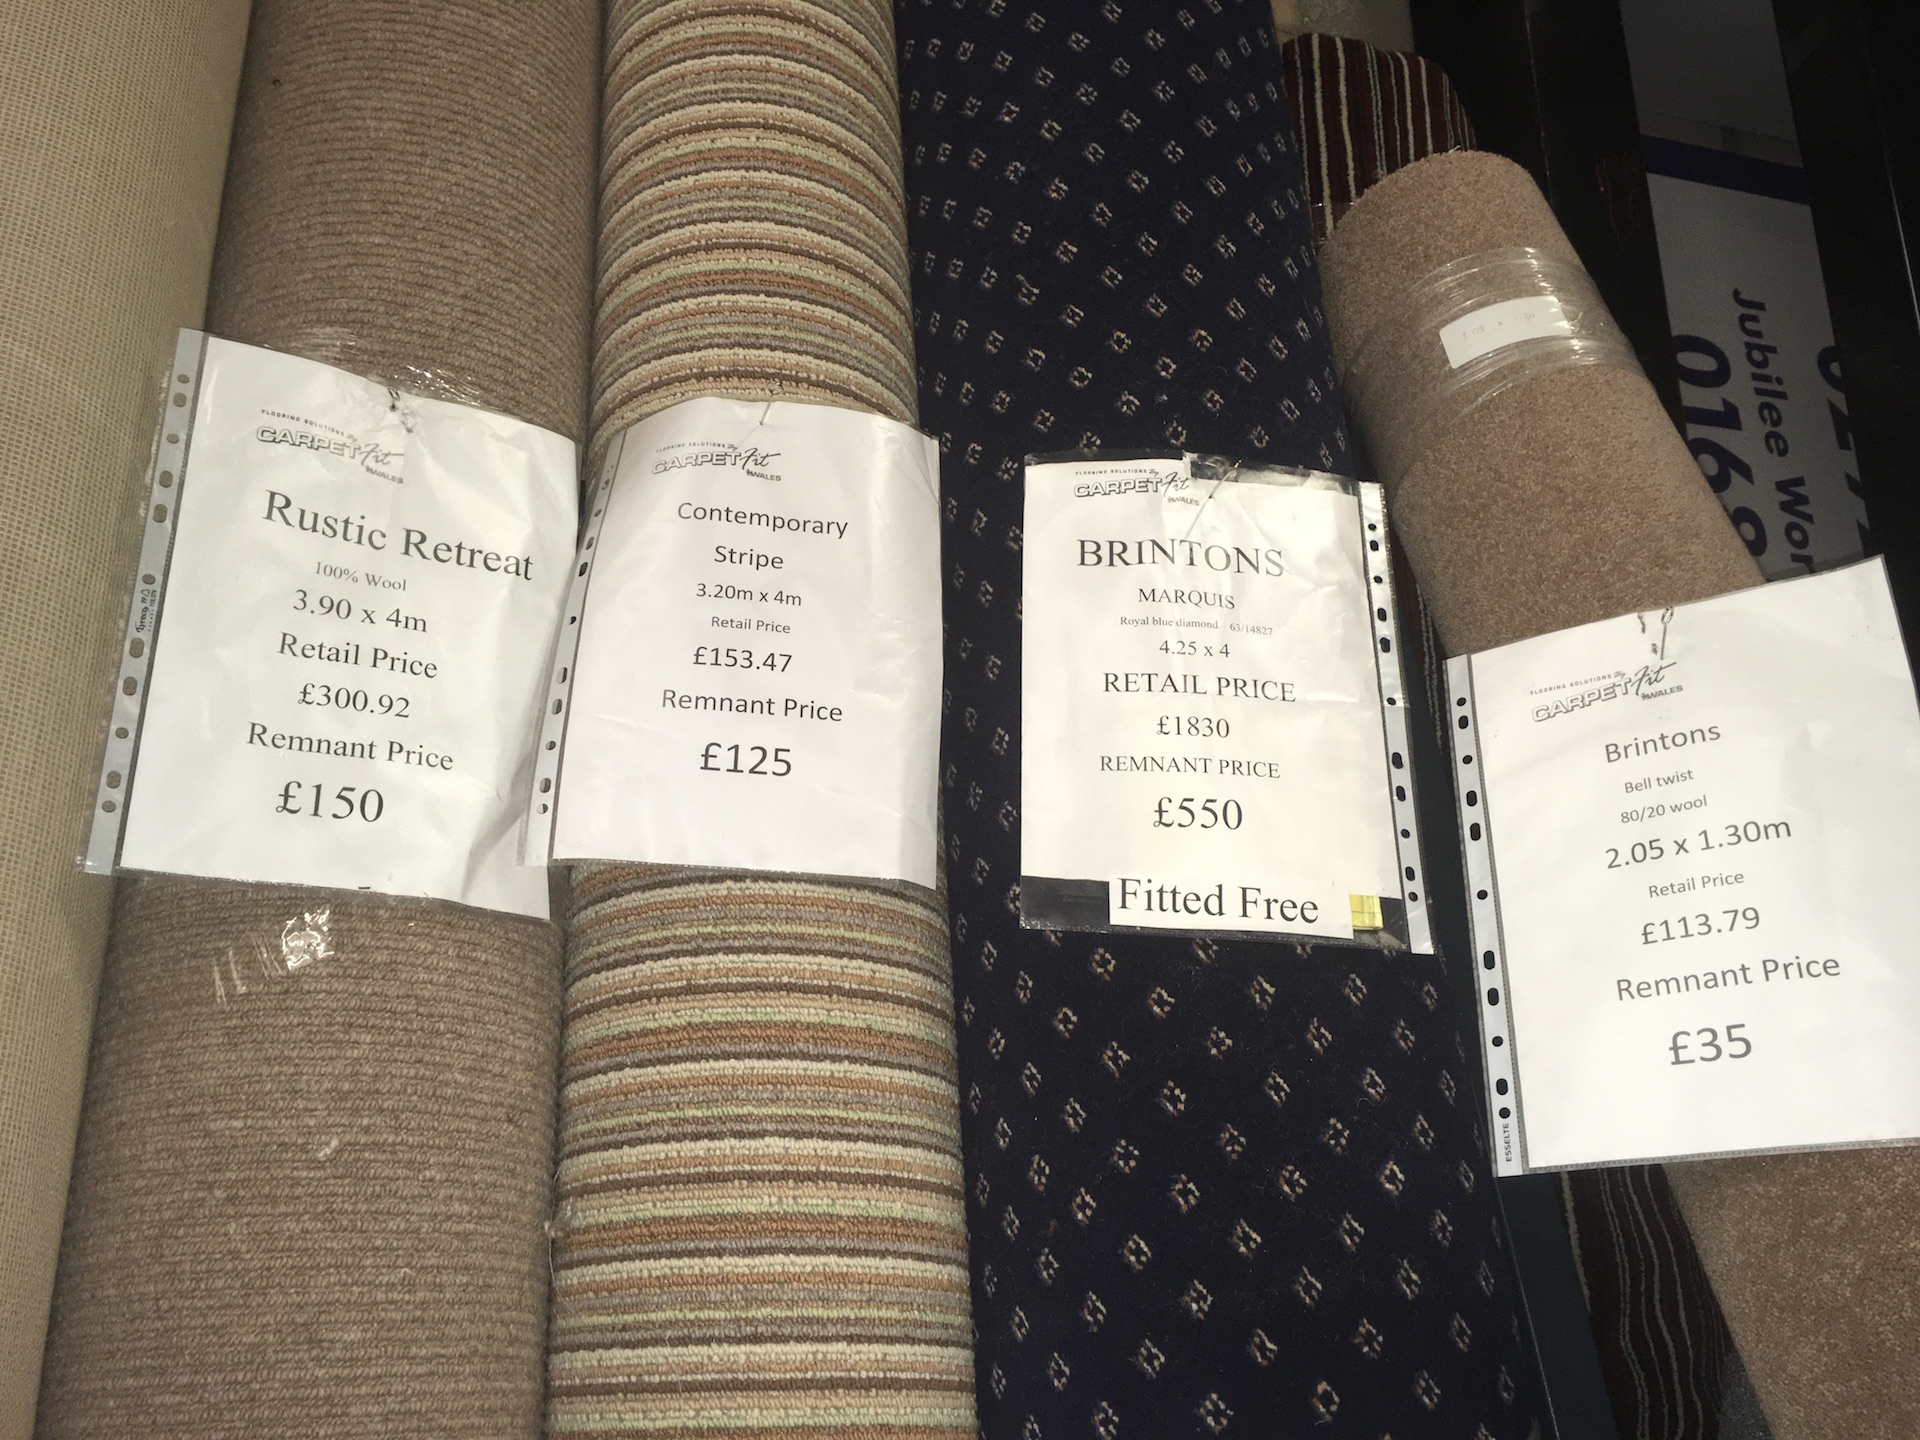 carpet-fit-wales-cynon-valley-aberdare-south-aberaman-experienced-skilled-great-customer-service-flooring-remnants-march-april-2017-1920